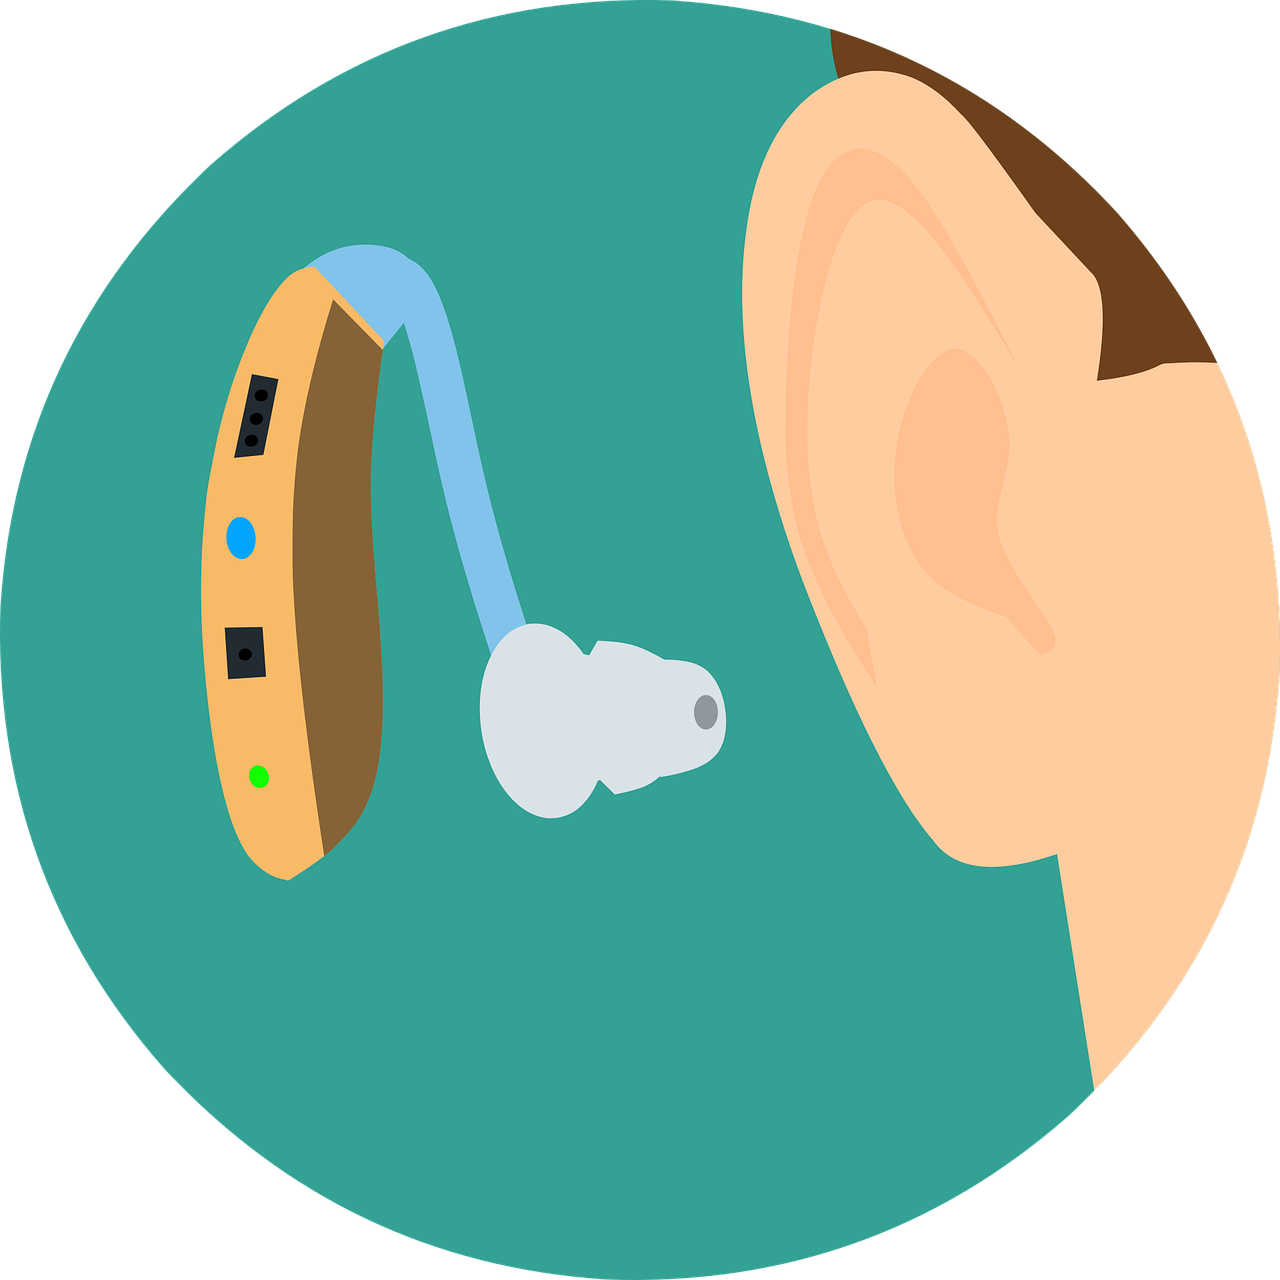 International Day of Deafness: why this day, symptoms and treatment